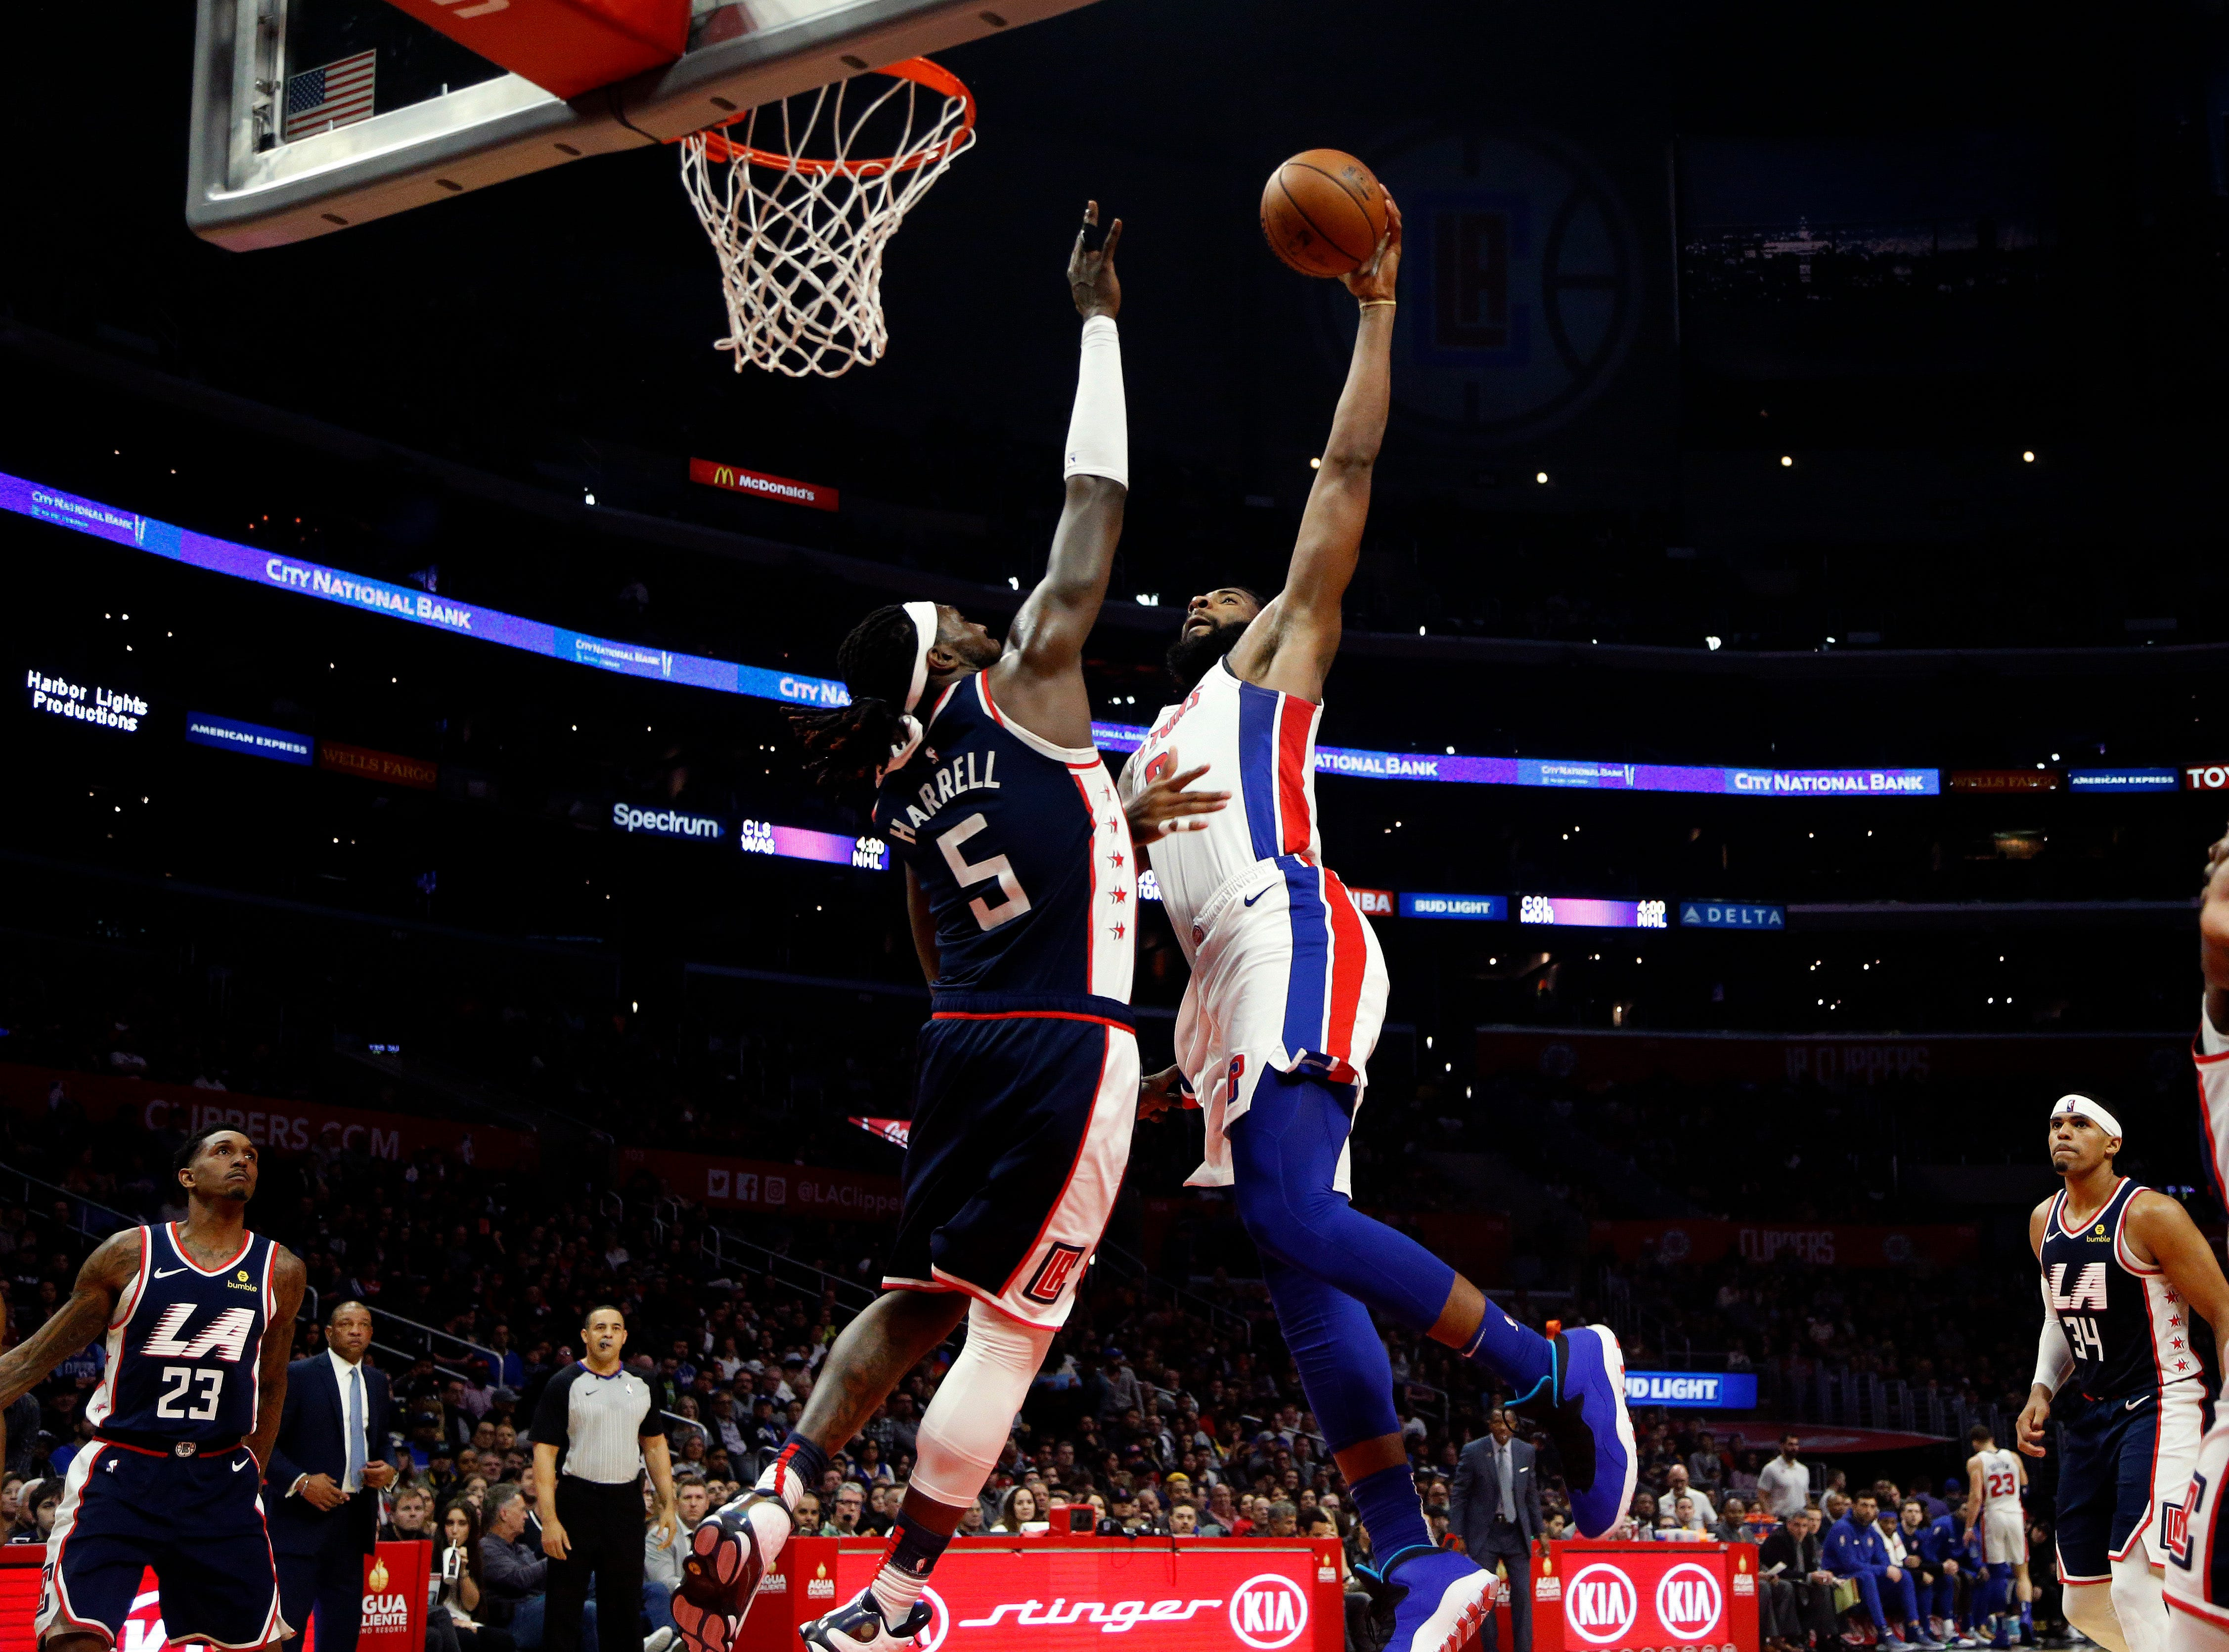 Detroit Pistons' Bruce Brown, center right, goes to basket while defended by Los Angeles Clippers' Montrezl Harrell during the second half.